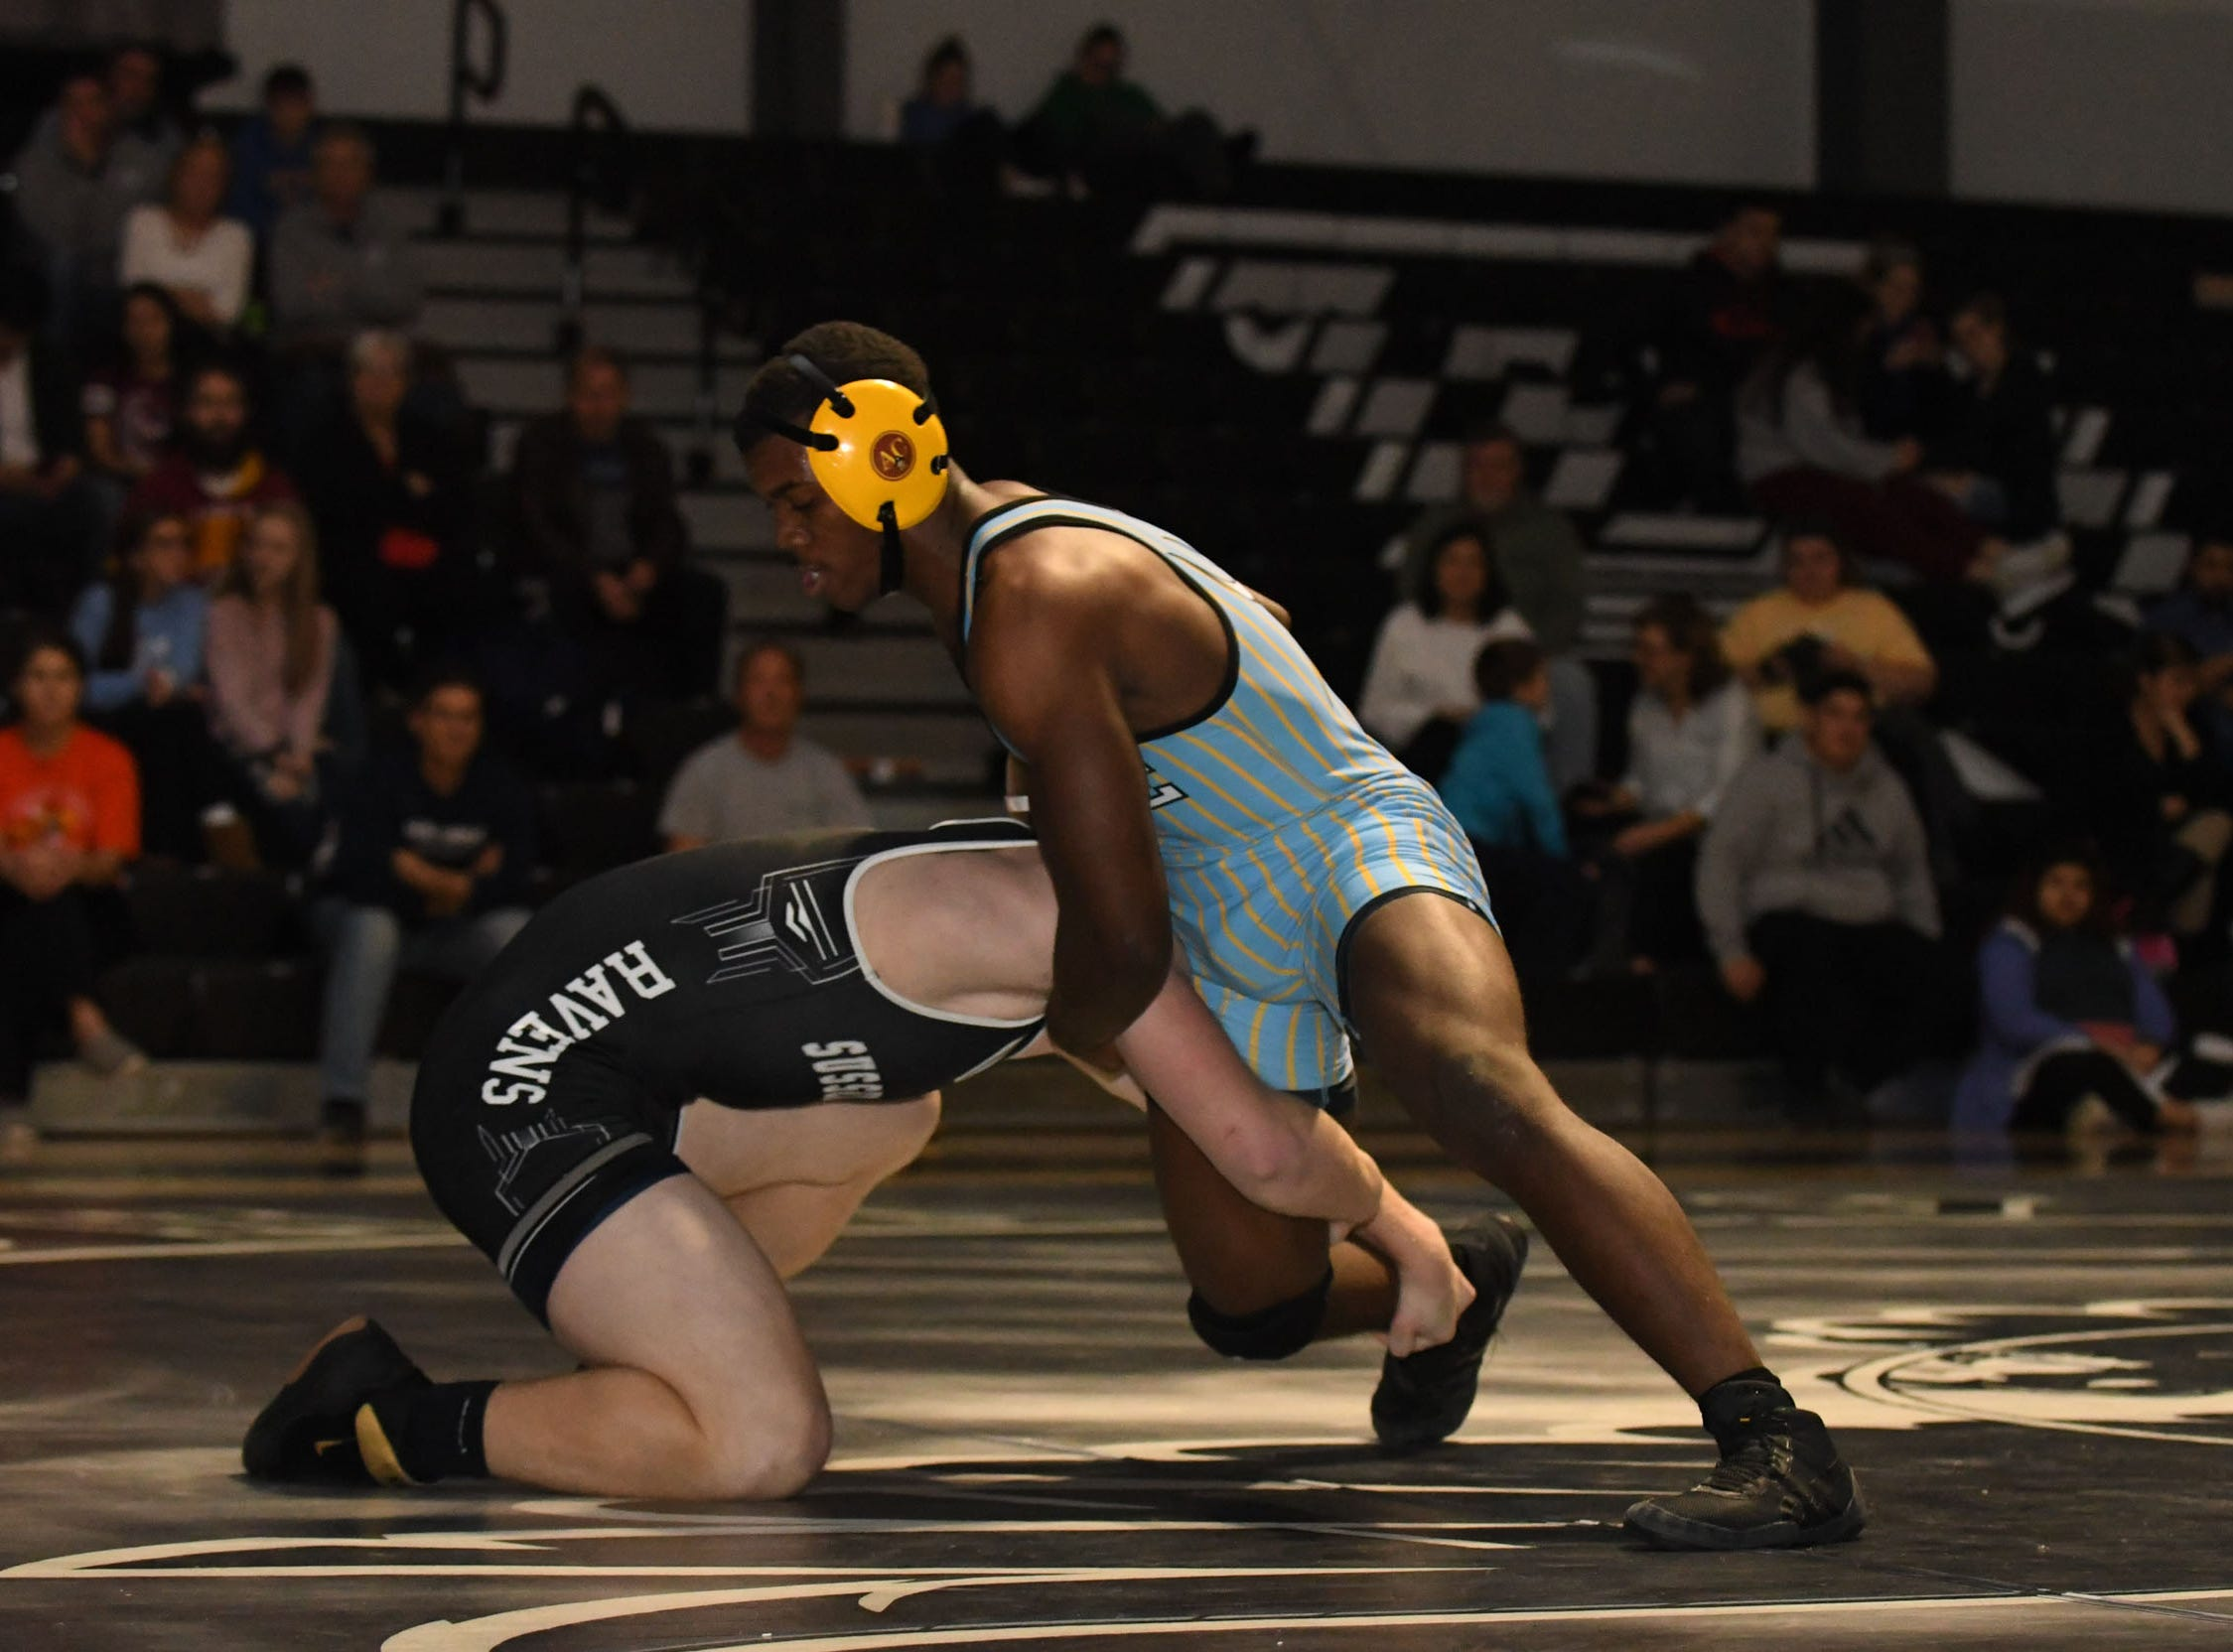 Sussex Tech's Trey Hatfield faced off against Cape Henlopen's Roy Jones during the 170lb match on Wedenesday, Jan. 23, 2019 at Sussex Tech High School in Georgetown, Del.